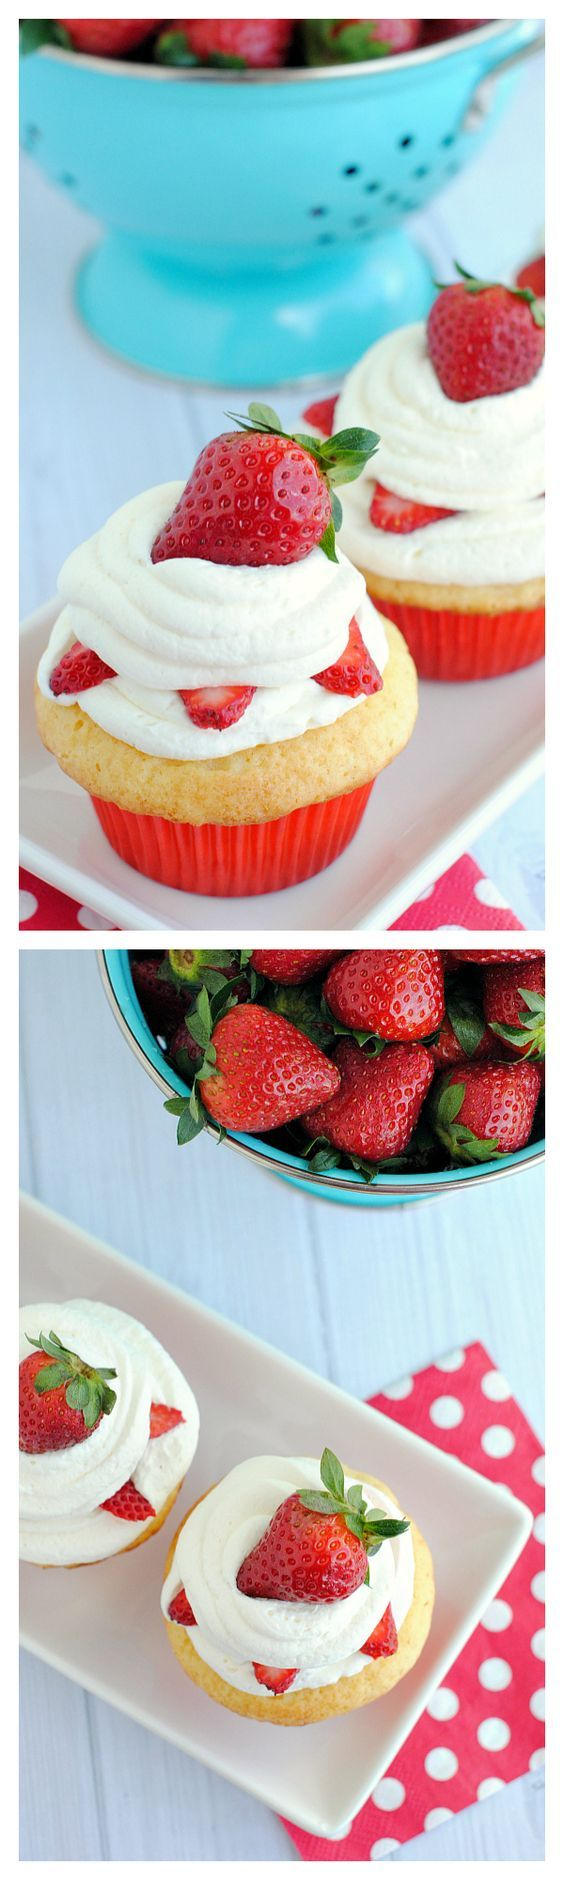 17 Best images about Cupcakes, Muffins & Popovers on Pinterest | New ...